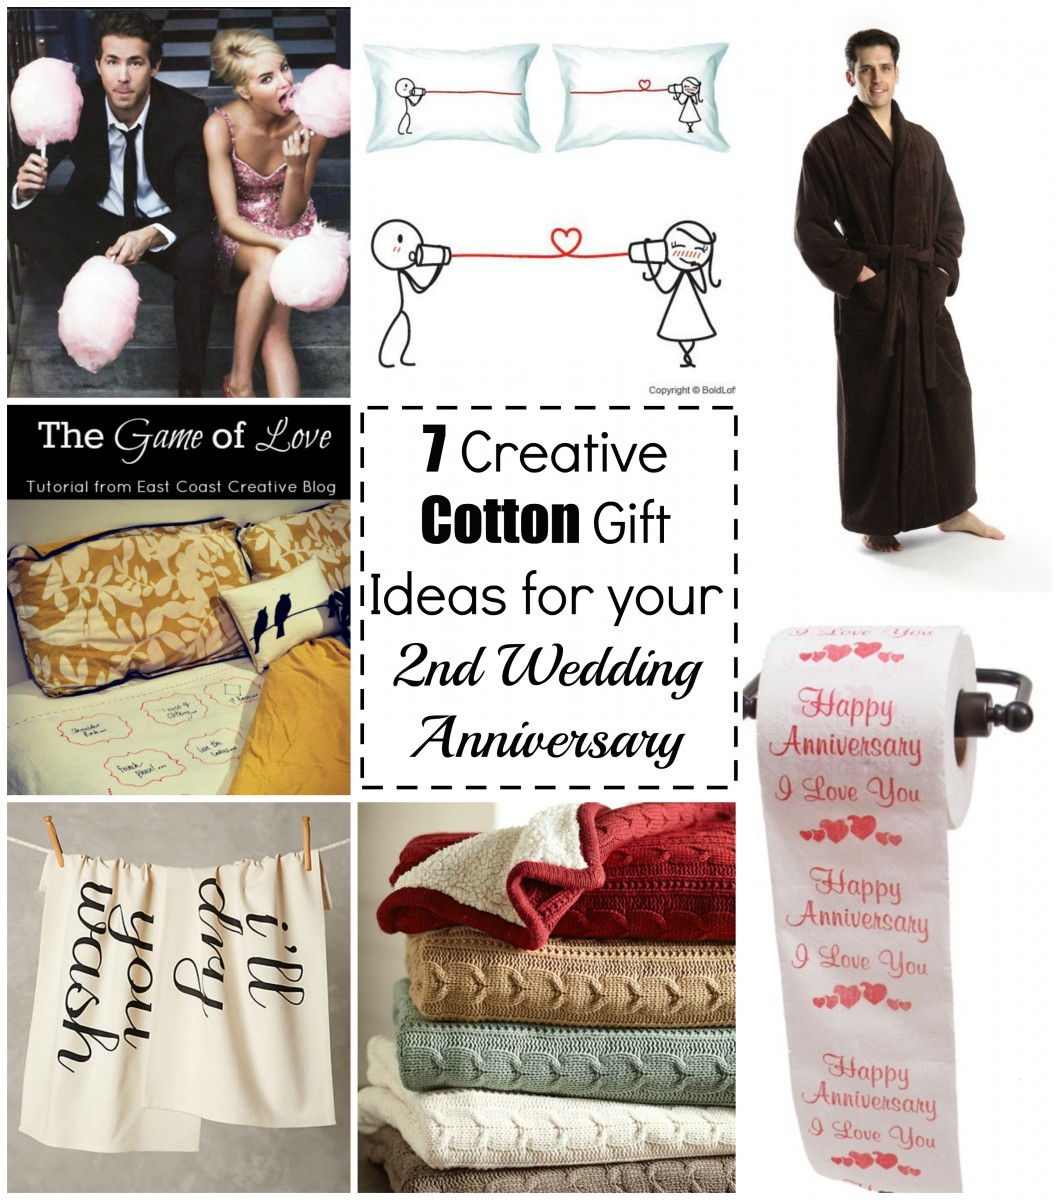 Great Wedding Gifts For 2nd Marriages : creative cotton gift ideas for your 2nd wedding anniversary her ...